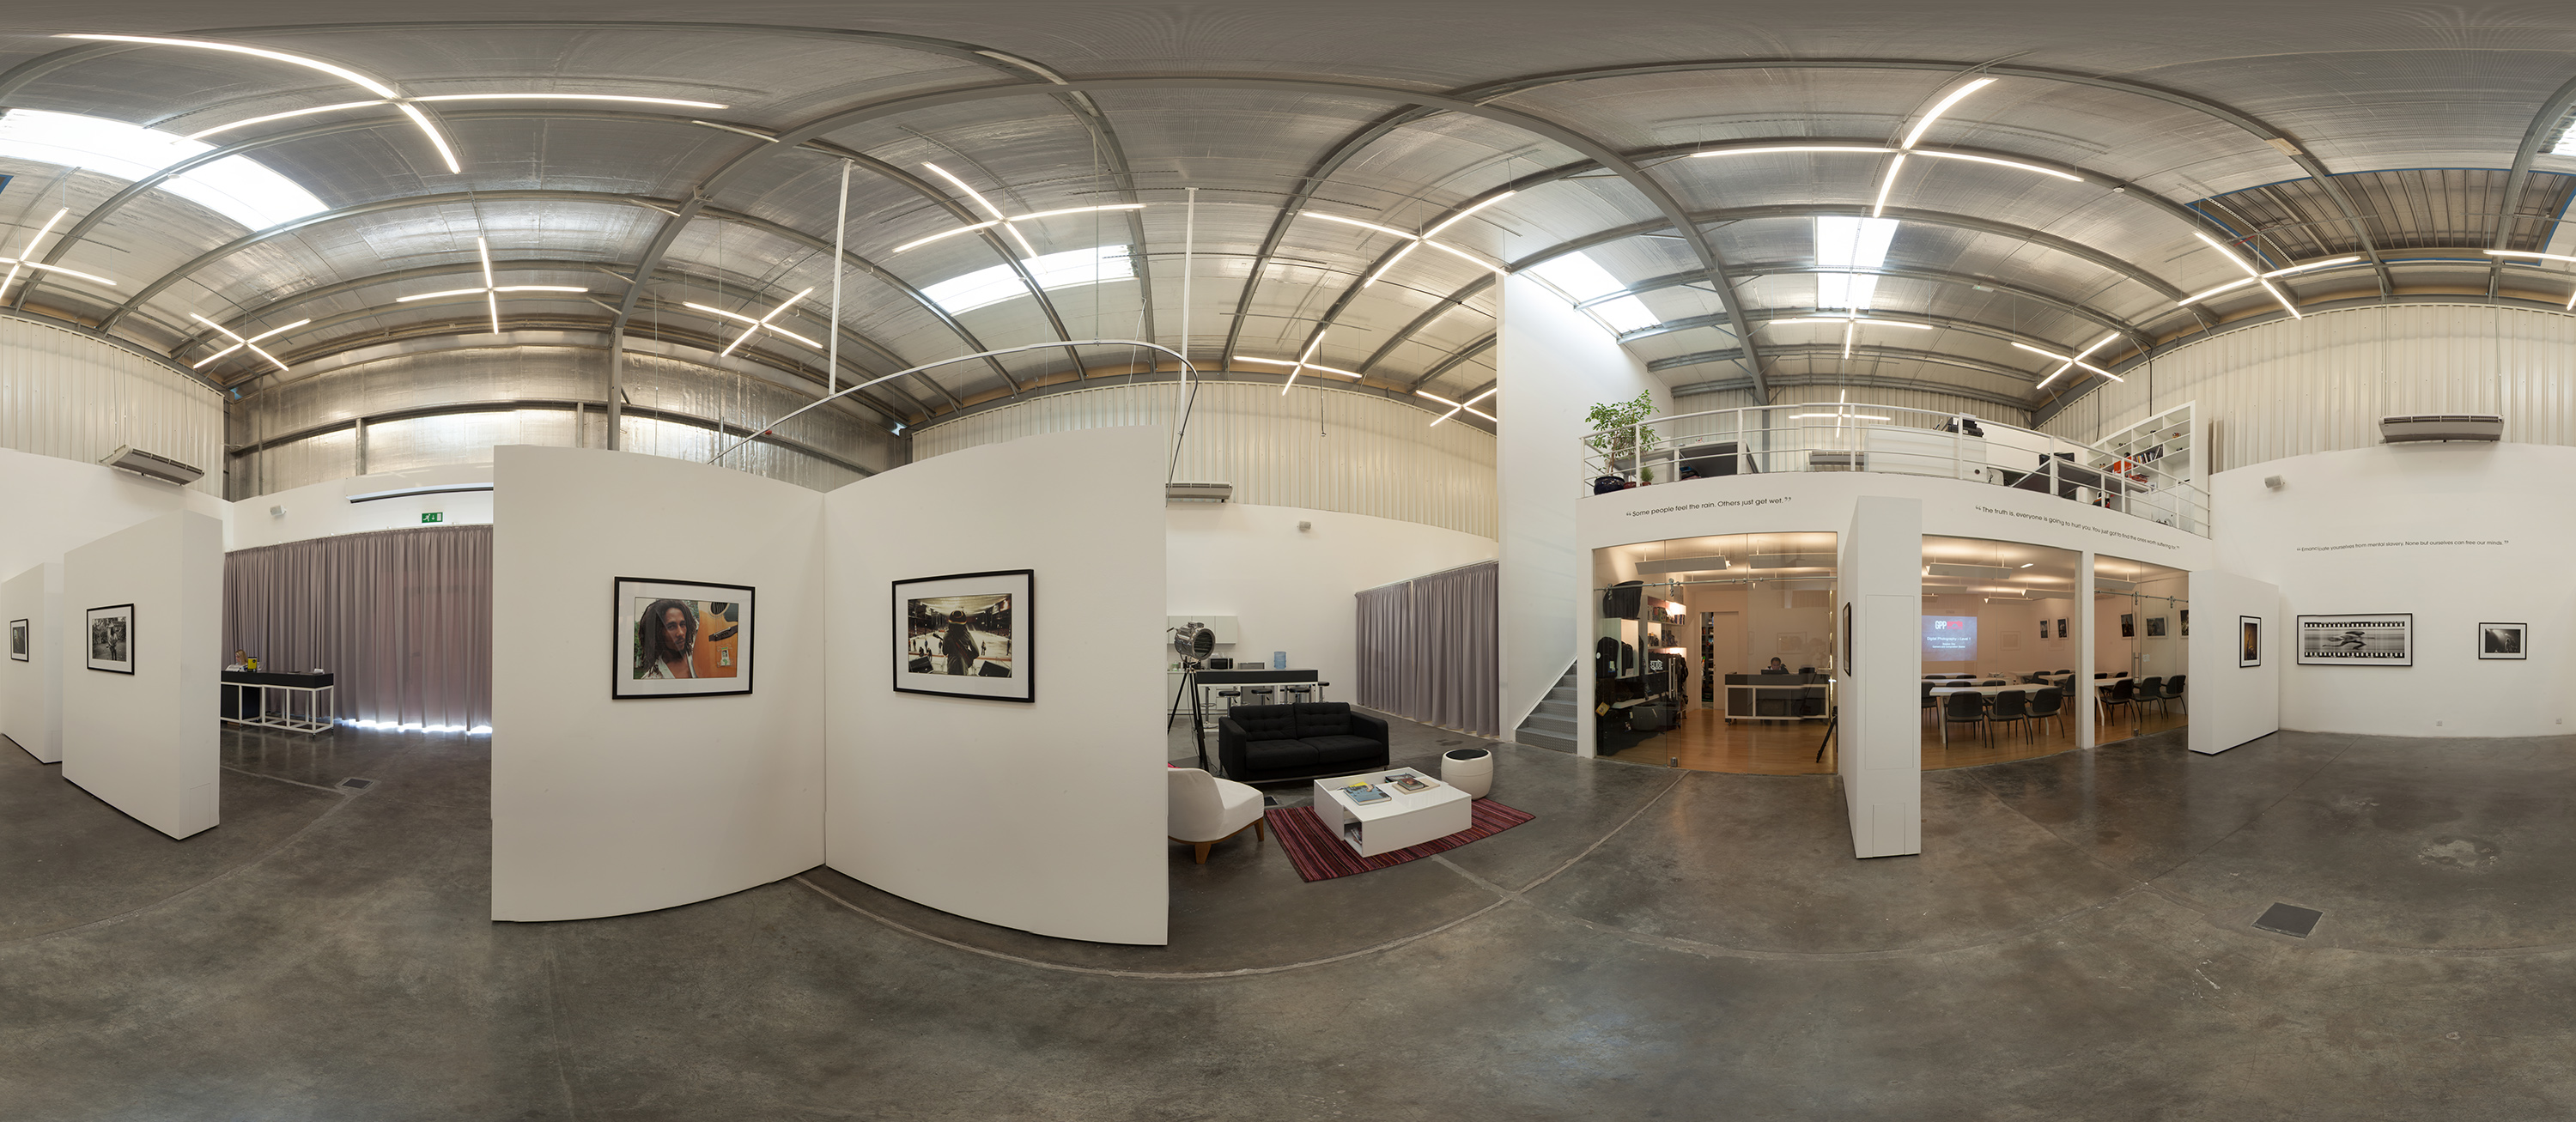 GPP: How we made a 360-degree panoramic image of the GPP Space